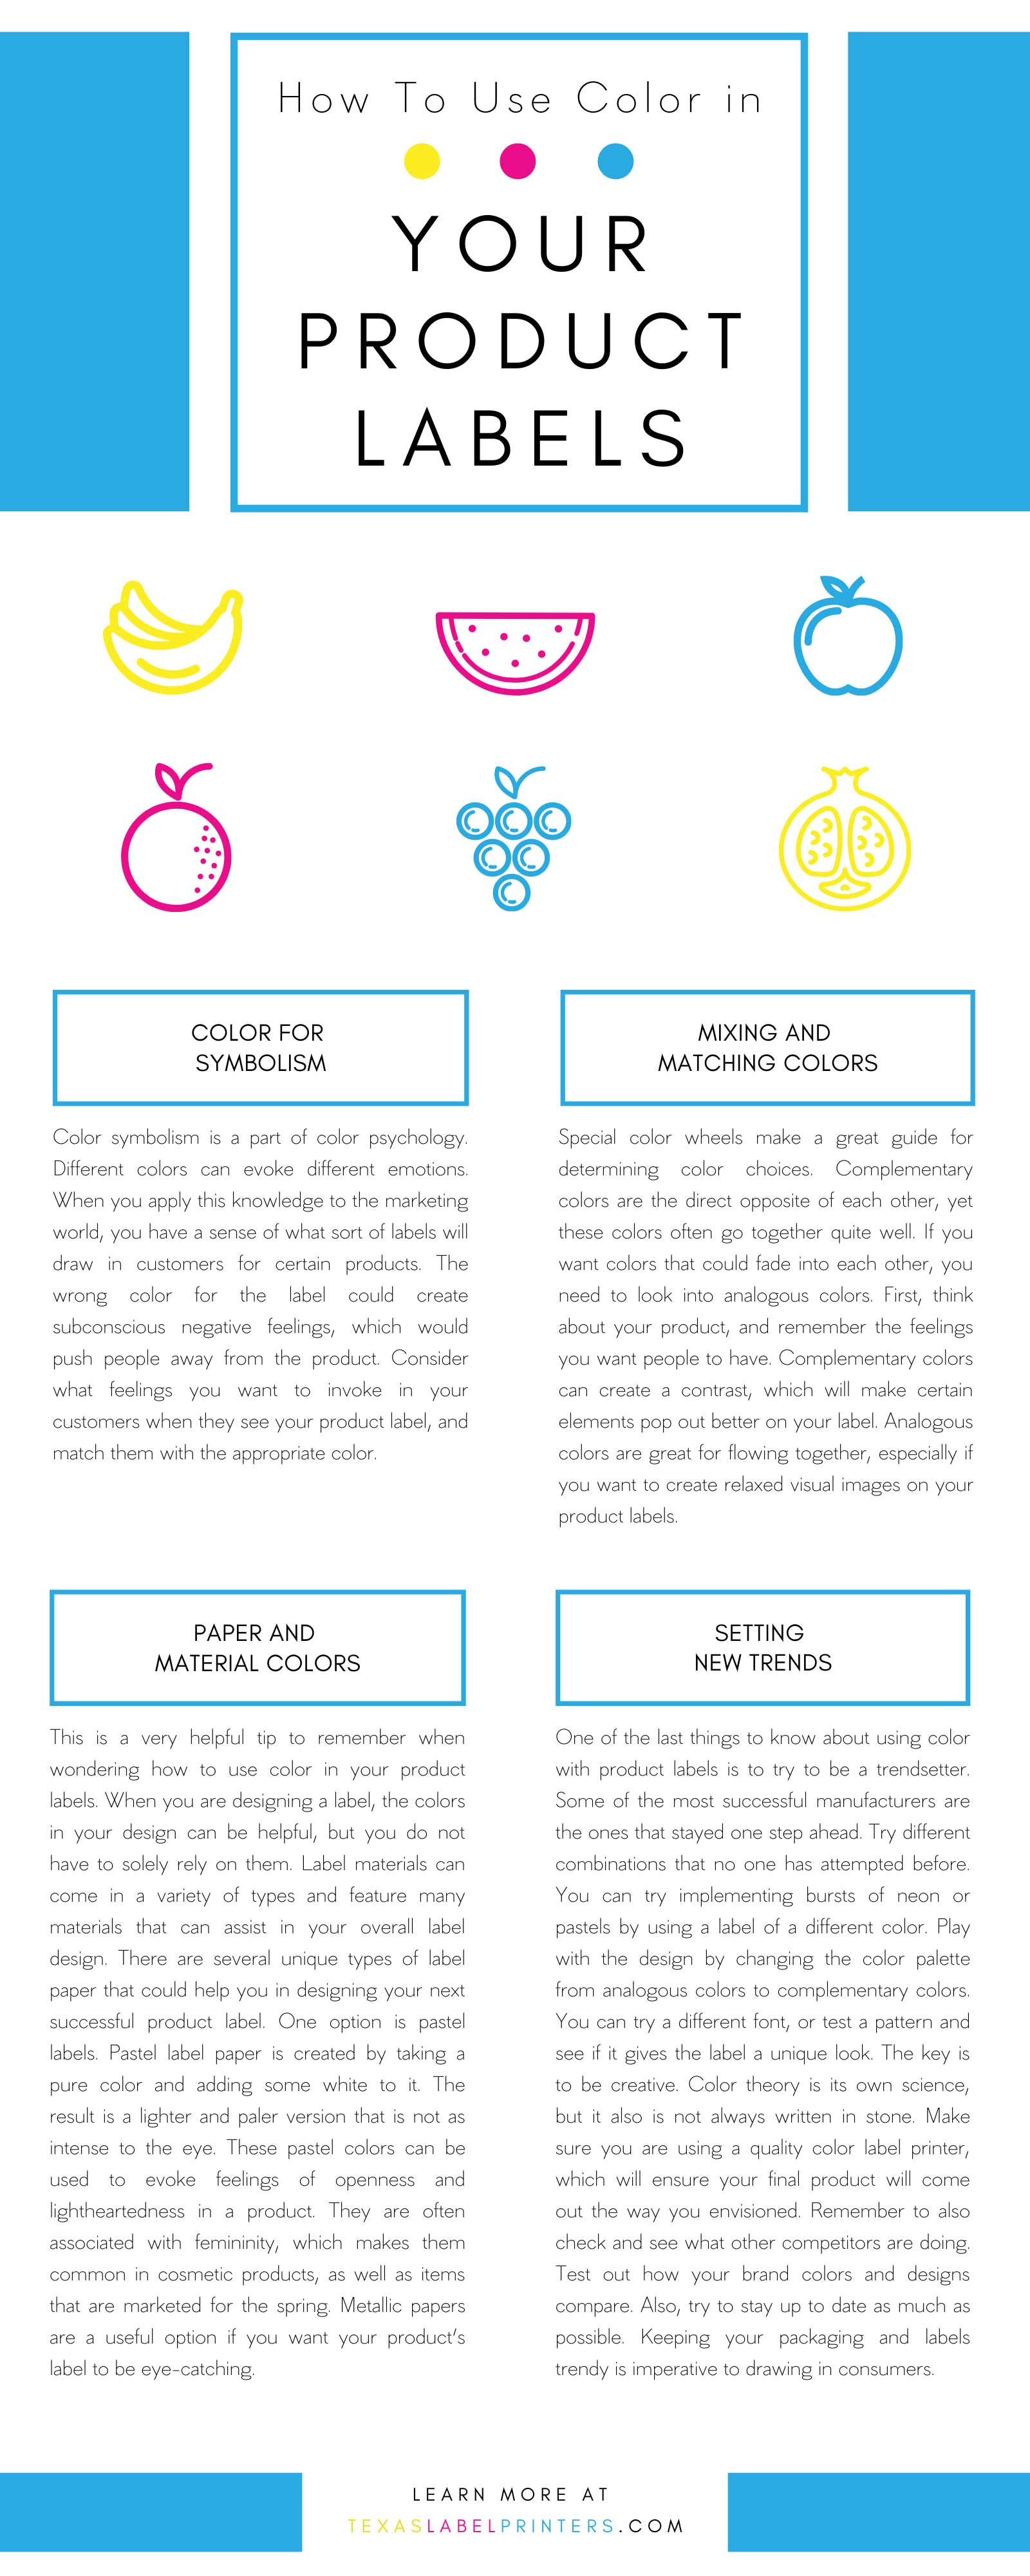 How To Use Color in Your Product Labels Infographic